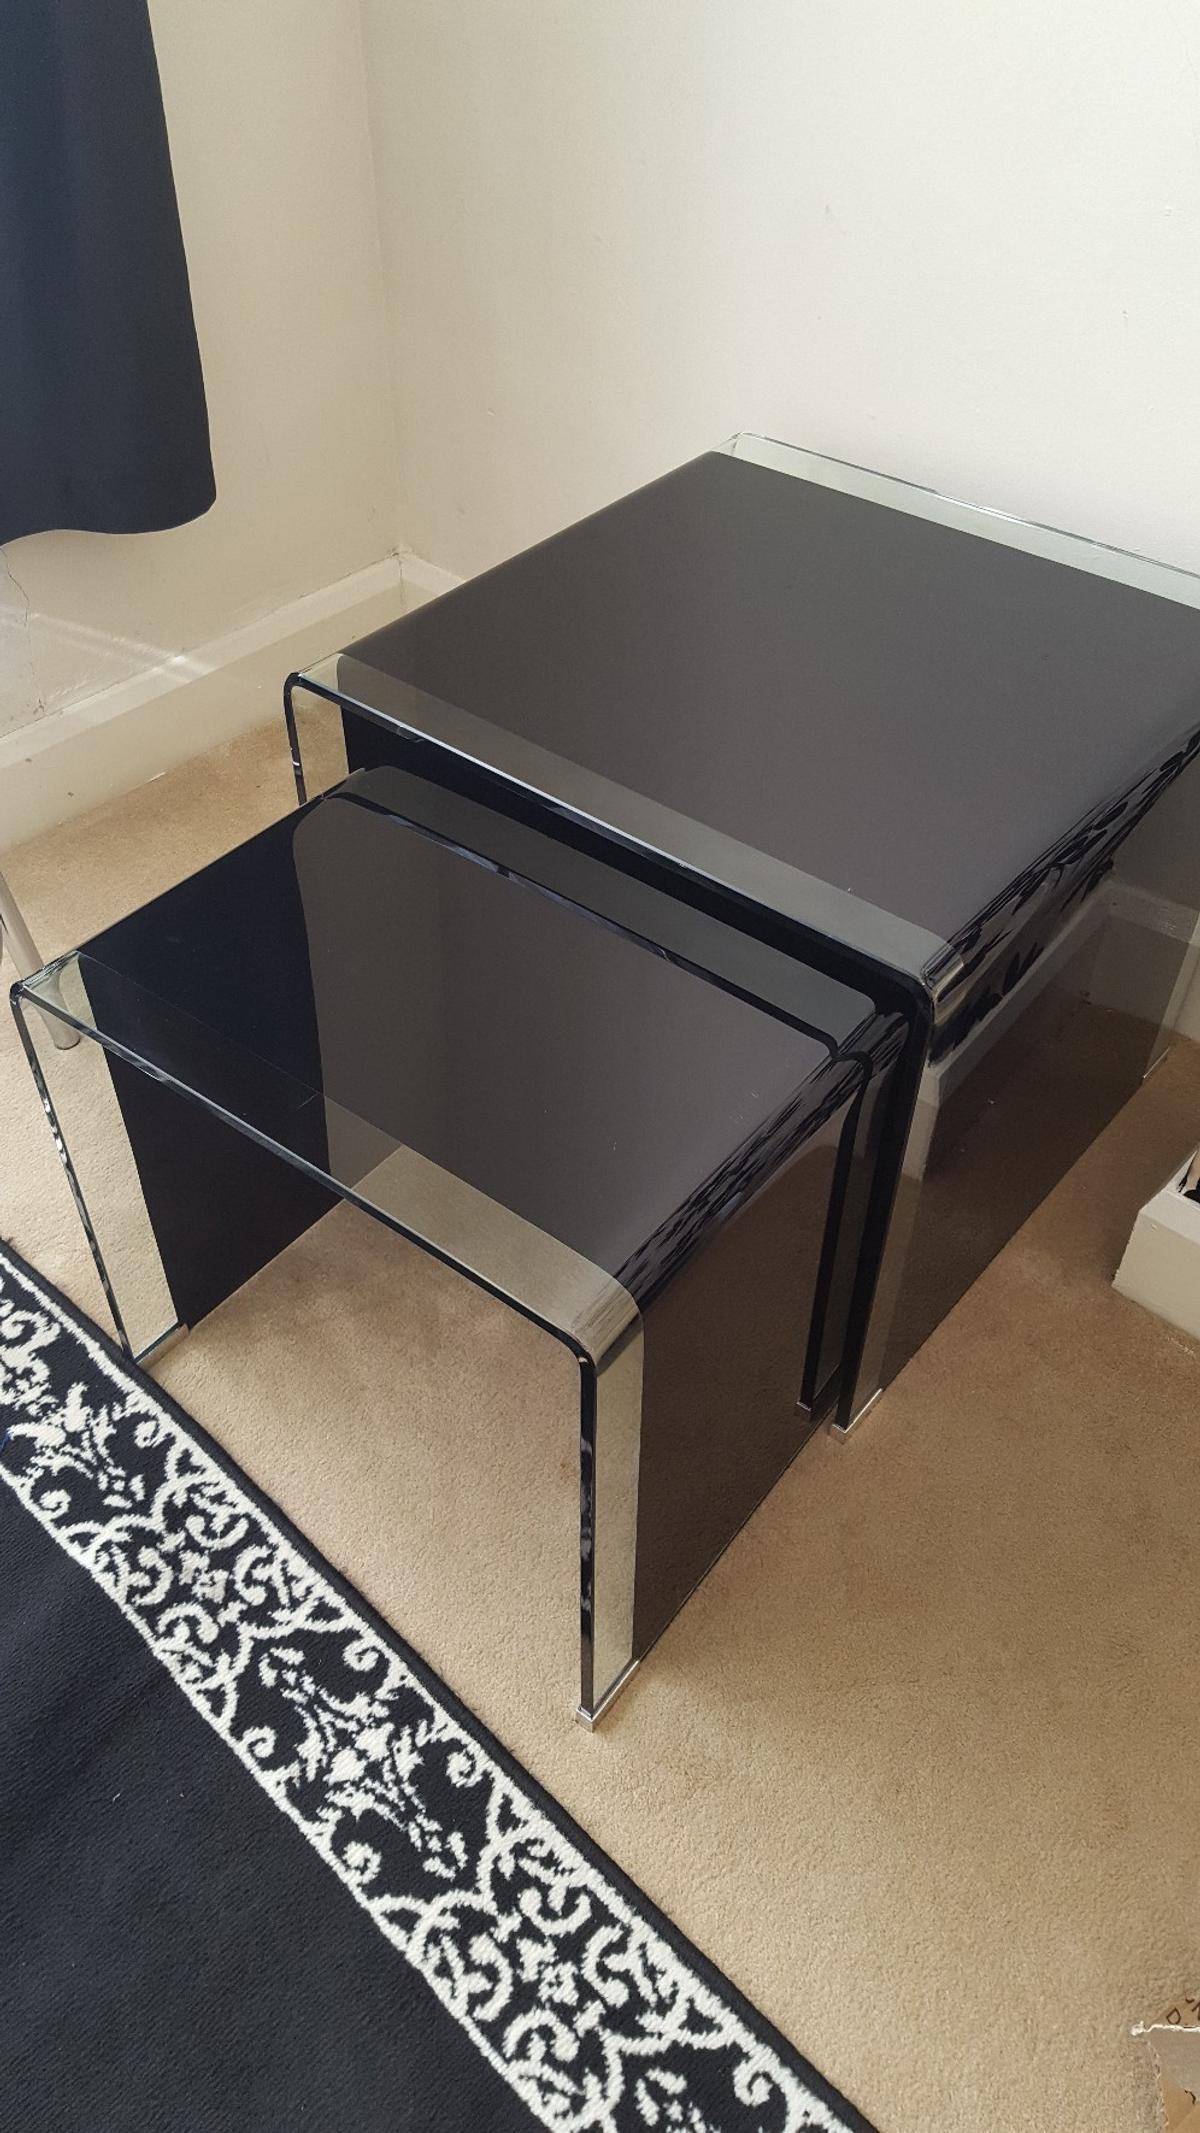 Modern Bent Glass Set Of Coffee Table Nest In B66 Smethwick For 65 00 For Sale Shpock